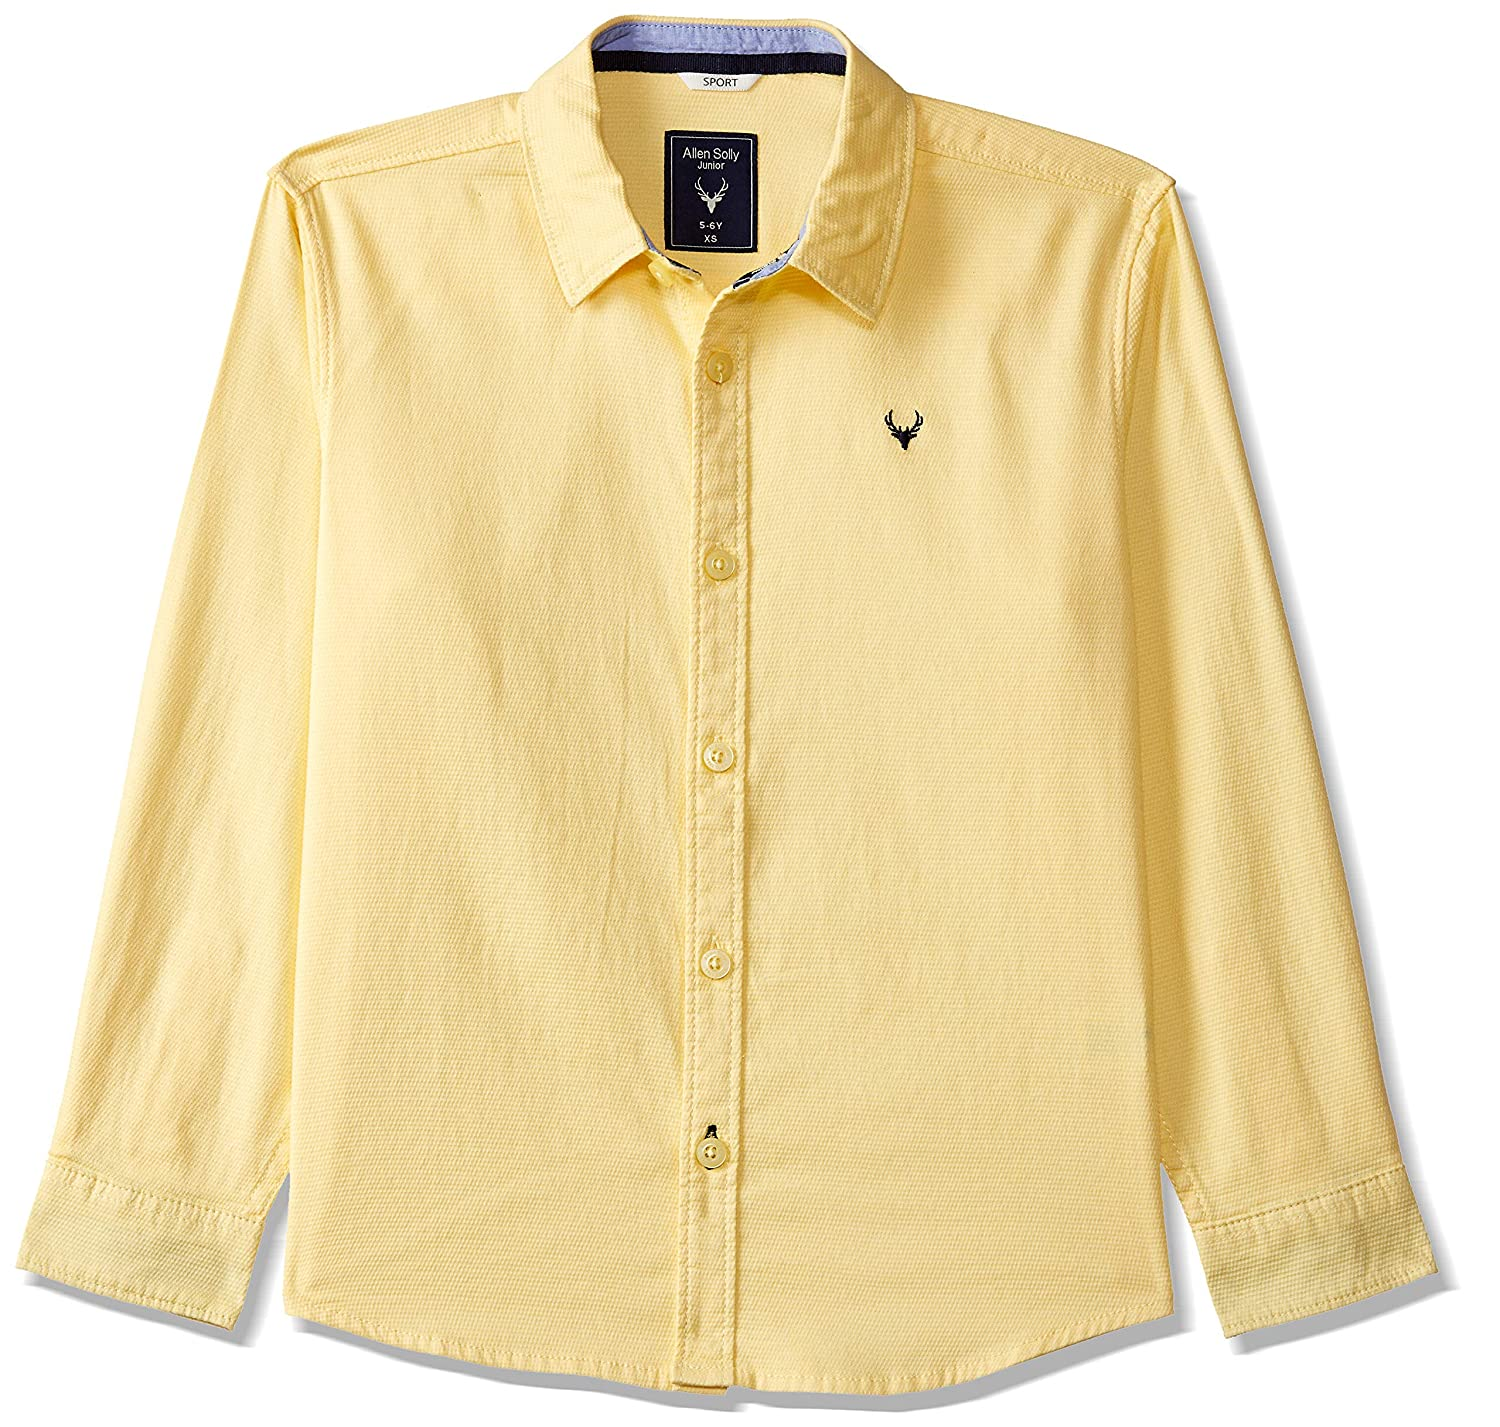 15127b3e0 Allen Solly Junior Boys' Plain Regular Fit Shirt: Amazon.in: Clothing &  Accessories